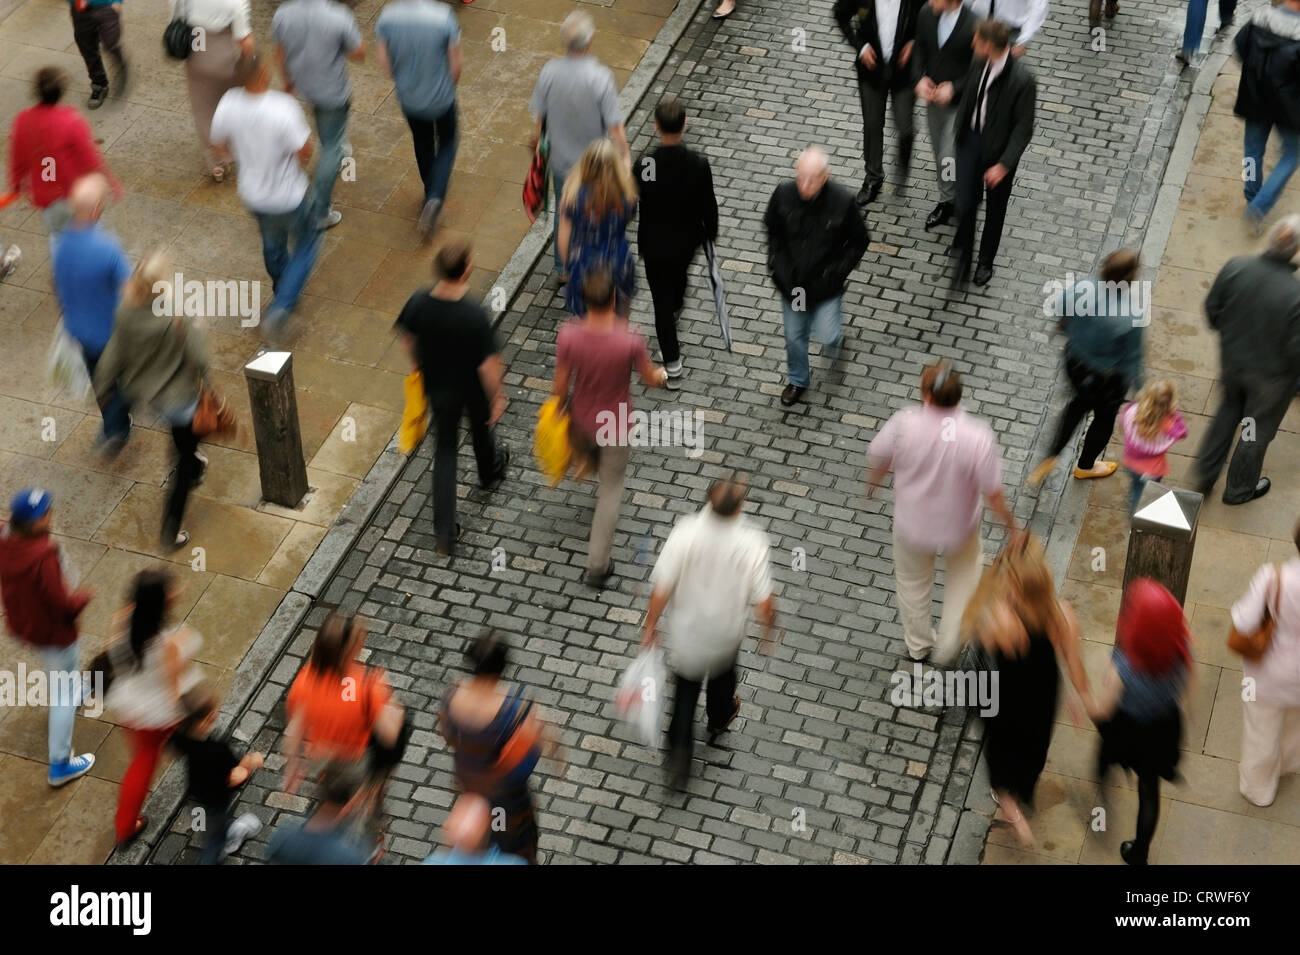 Overhead city centre crowds of shoppers - Stock Image